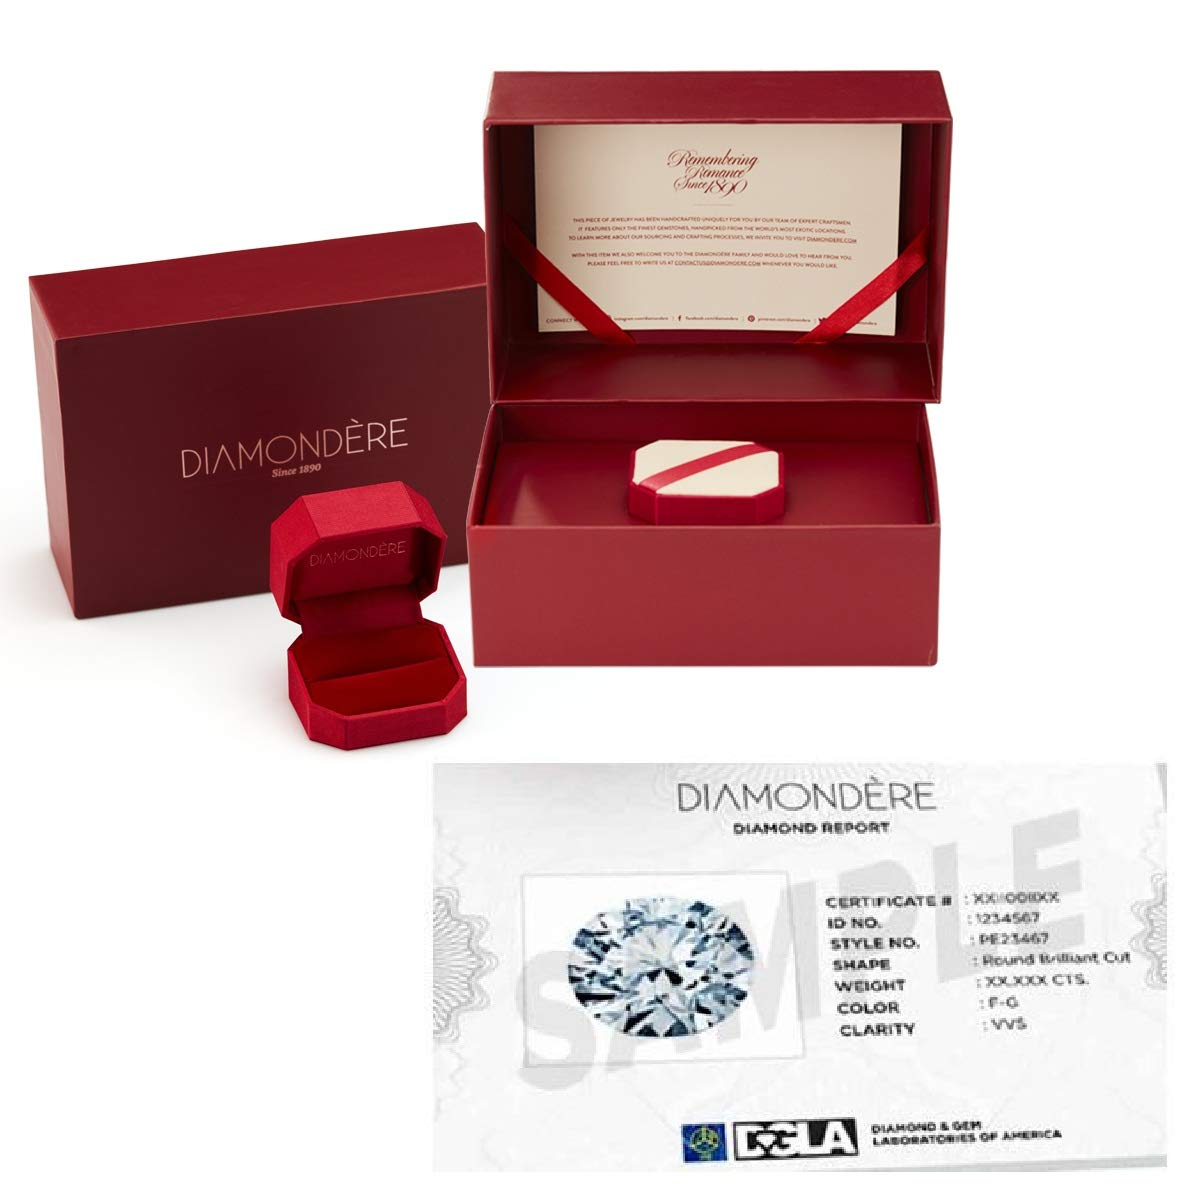 Diamondere Natural and Certified Diamond Wedding Ring in 14K White Gold | 0.79 Carat Full Eternity Stackable Band for Women, US Size 5.5 by Diamondere (Image #4)